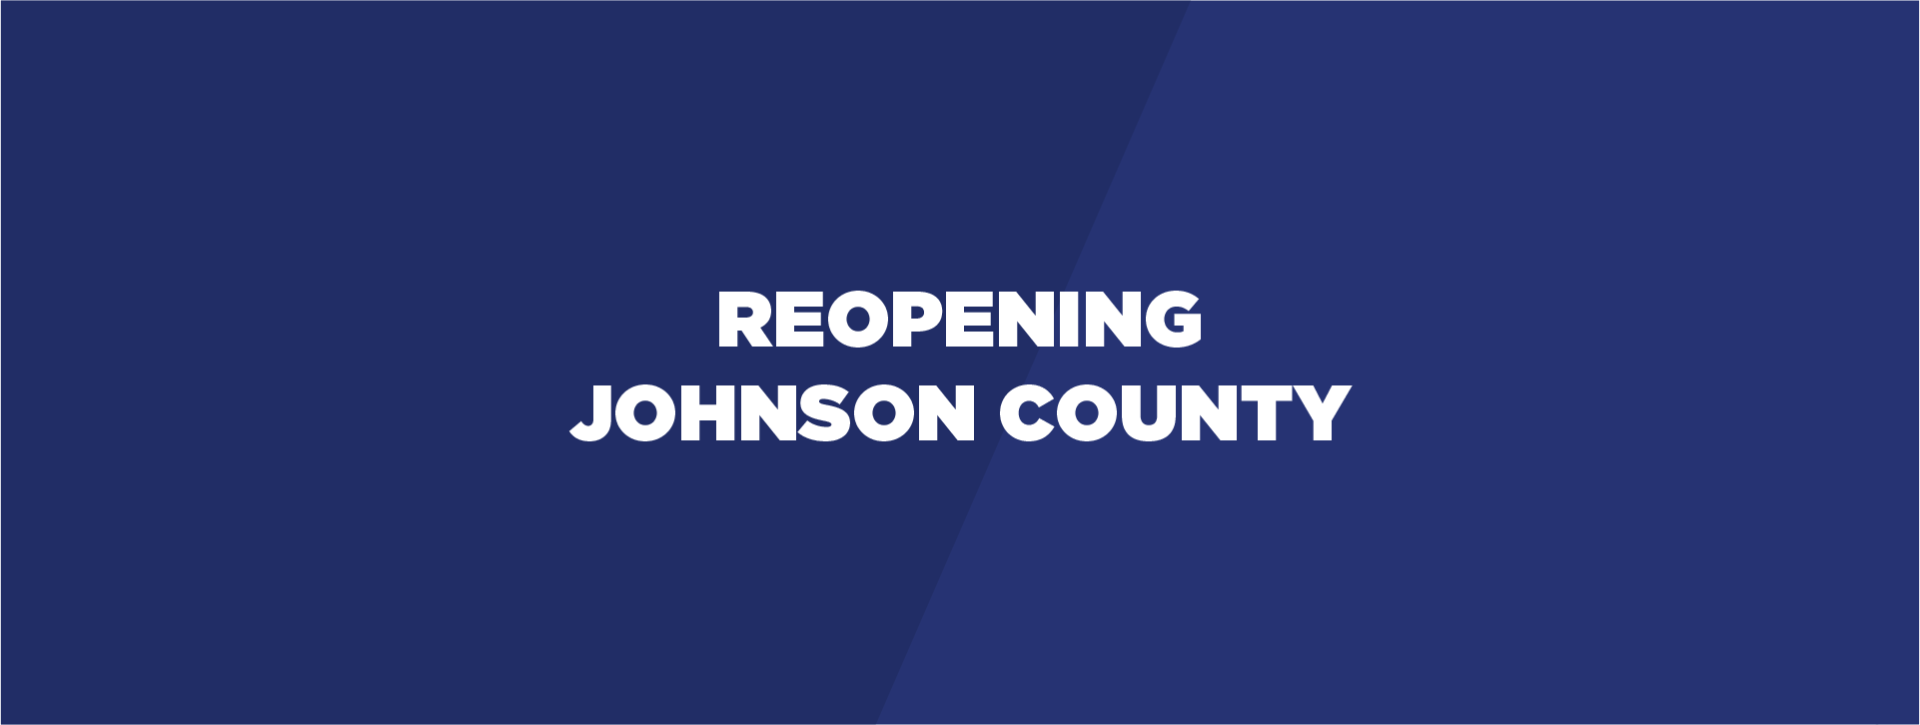 Reopening johnson county